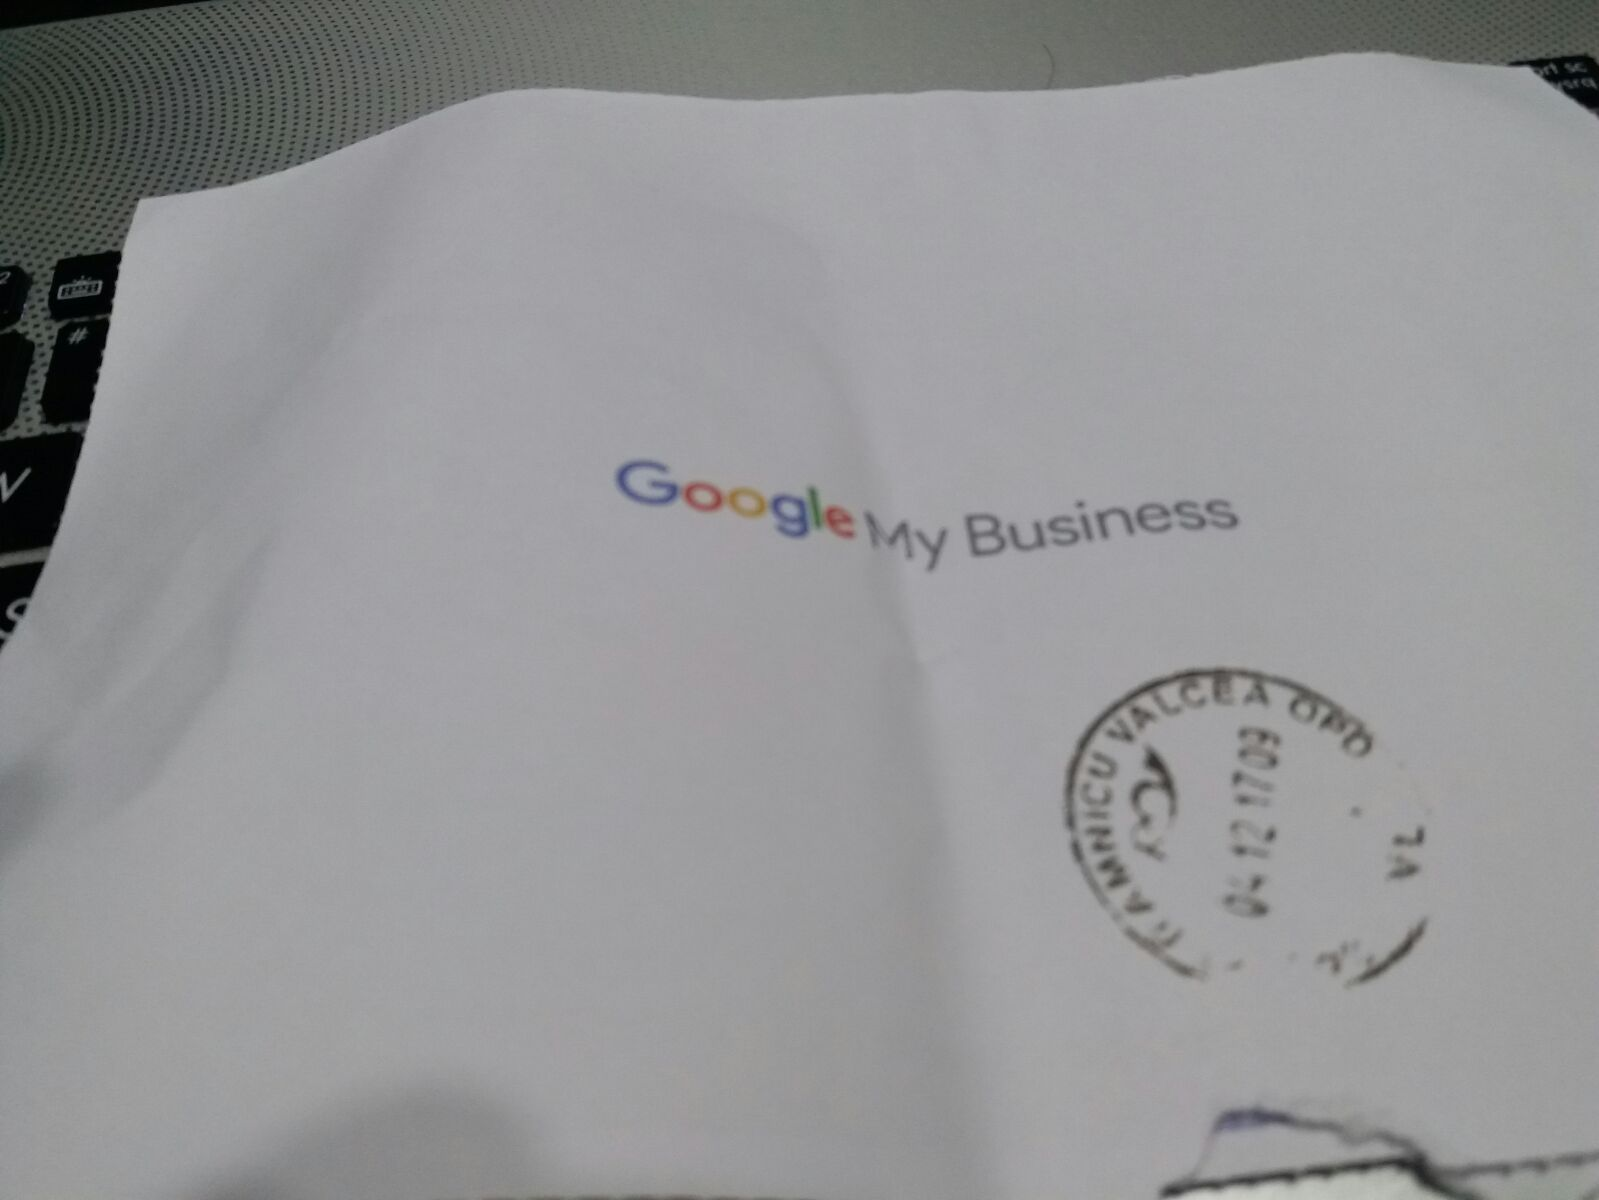 Google My Business confirmation envelope